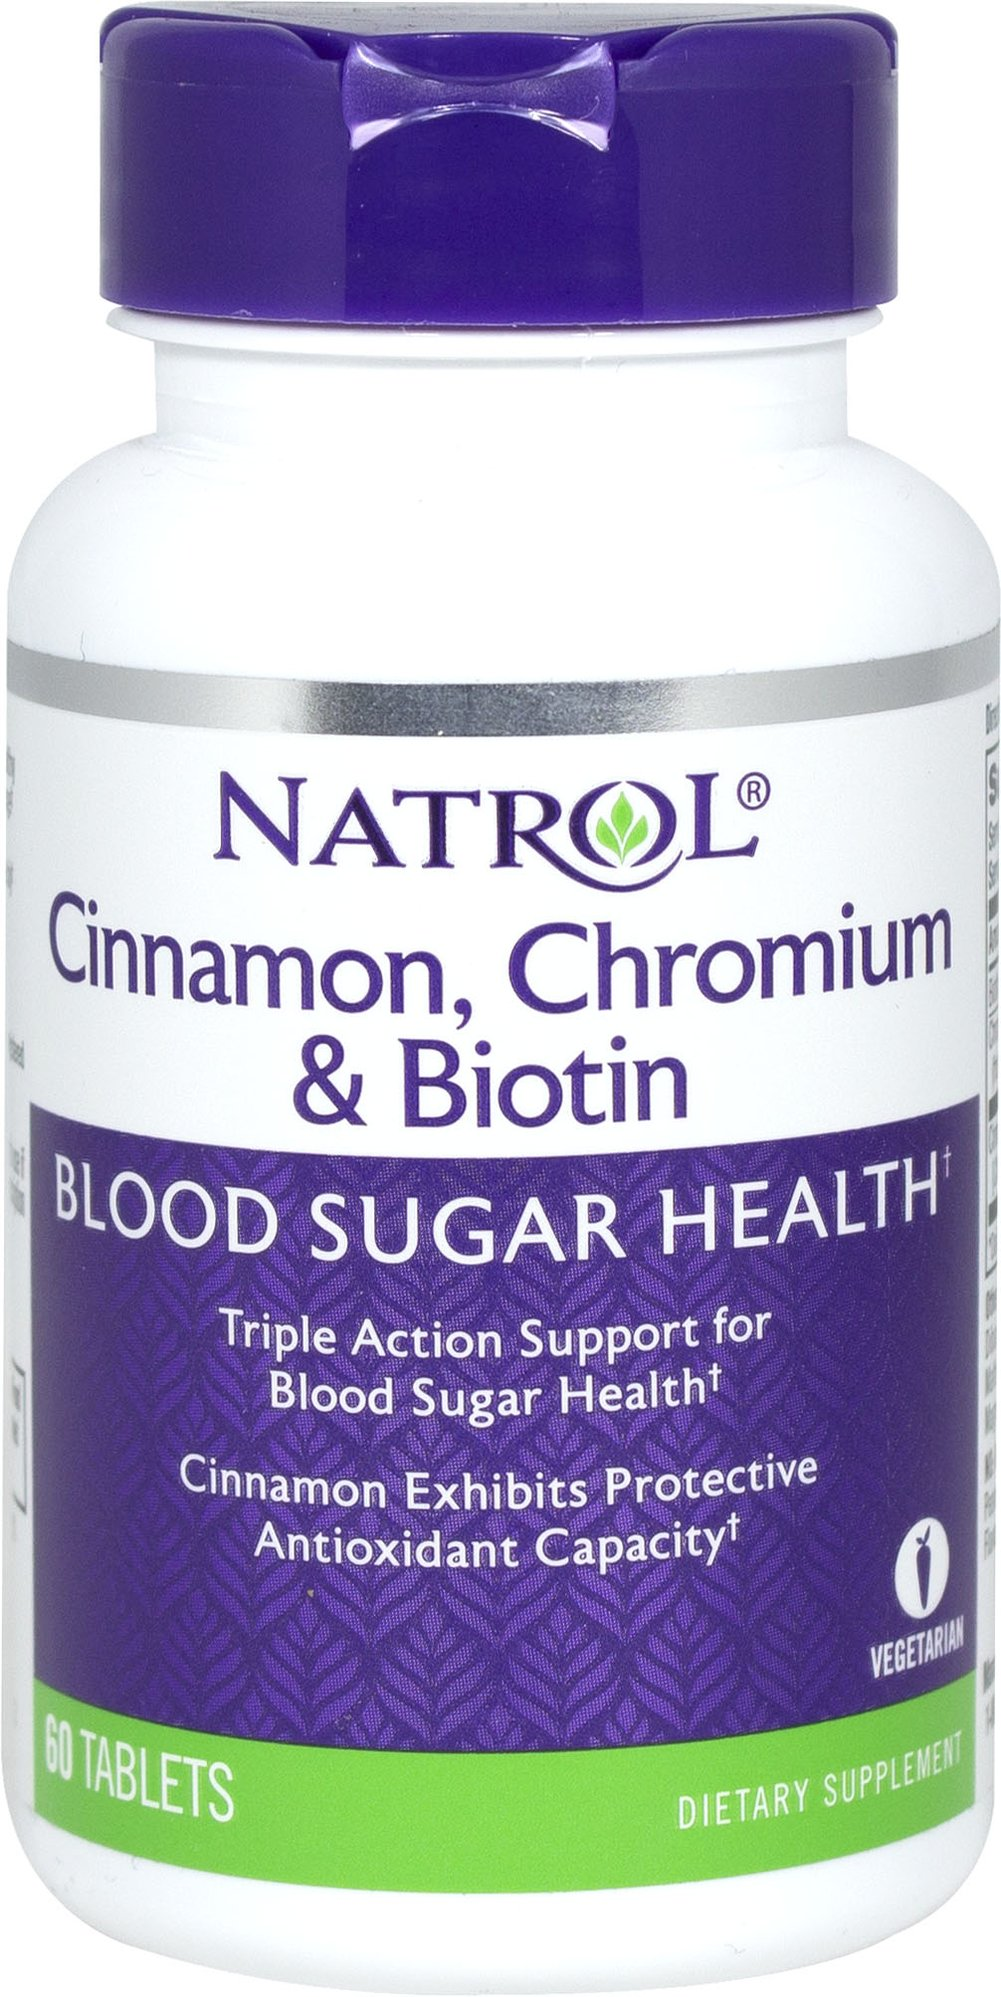 Super Cinnamon Complex with Chromium & Biotin <p><strong>From the Manufacturer's Label:</strong></p><p>Natrol Cinnamon Biotin Chromium provides a powerful, triple action formula of Cinnamon, Biotin, and Chromium Picolinate to support sugar, protein, and fat metabolism and help maintain blood sugar levels already within the normal range.</p><p>Manufactured by Natrol</p><p><strong></strong></p> 60 Tablets  $7.99